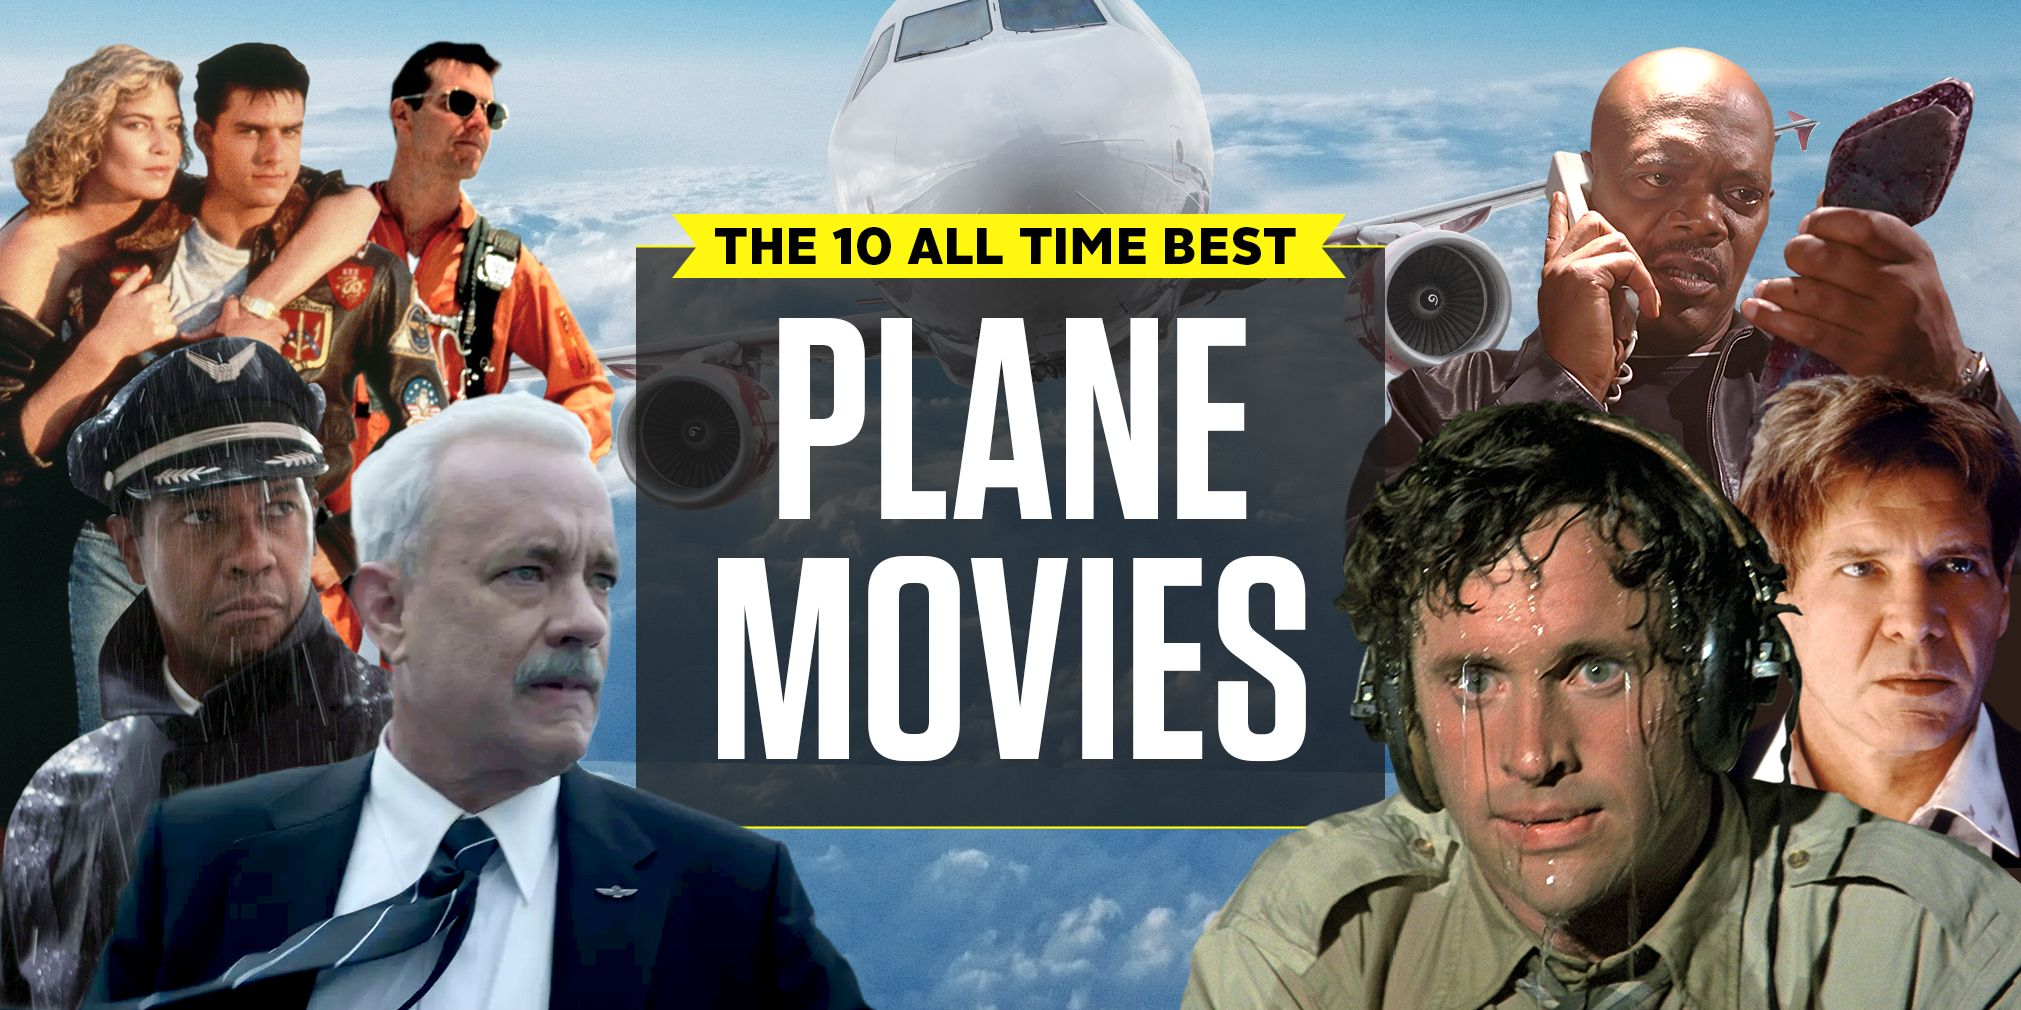 The 10 Best Plane Movies Of All Time